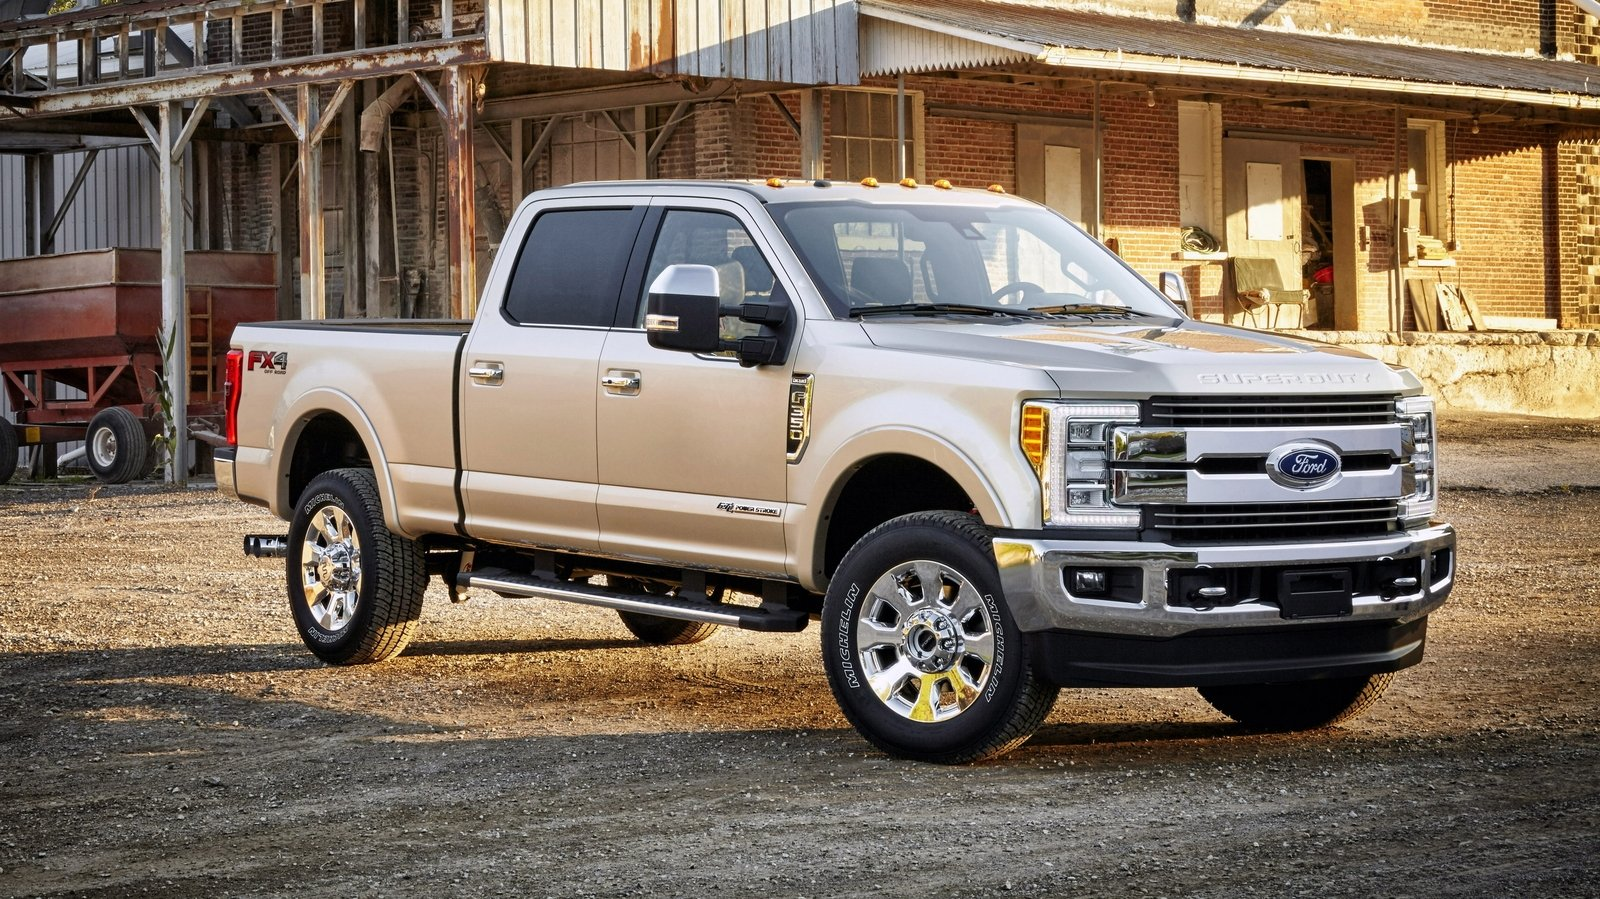 Ford F Series Latest News Reviews Specifications Prices Photos